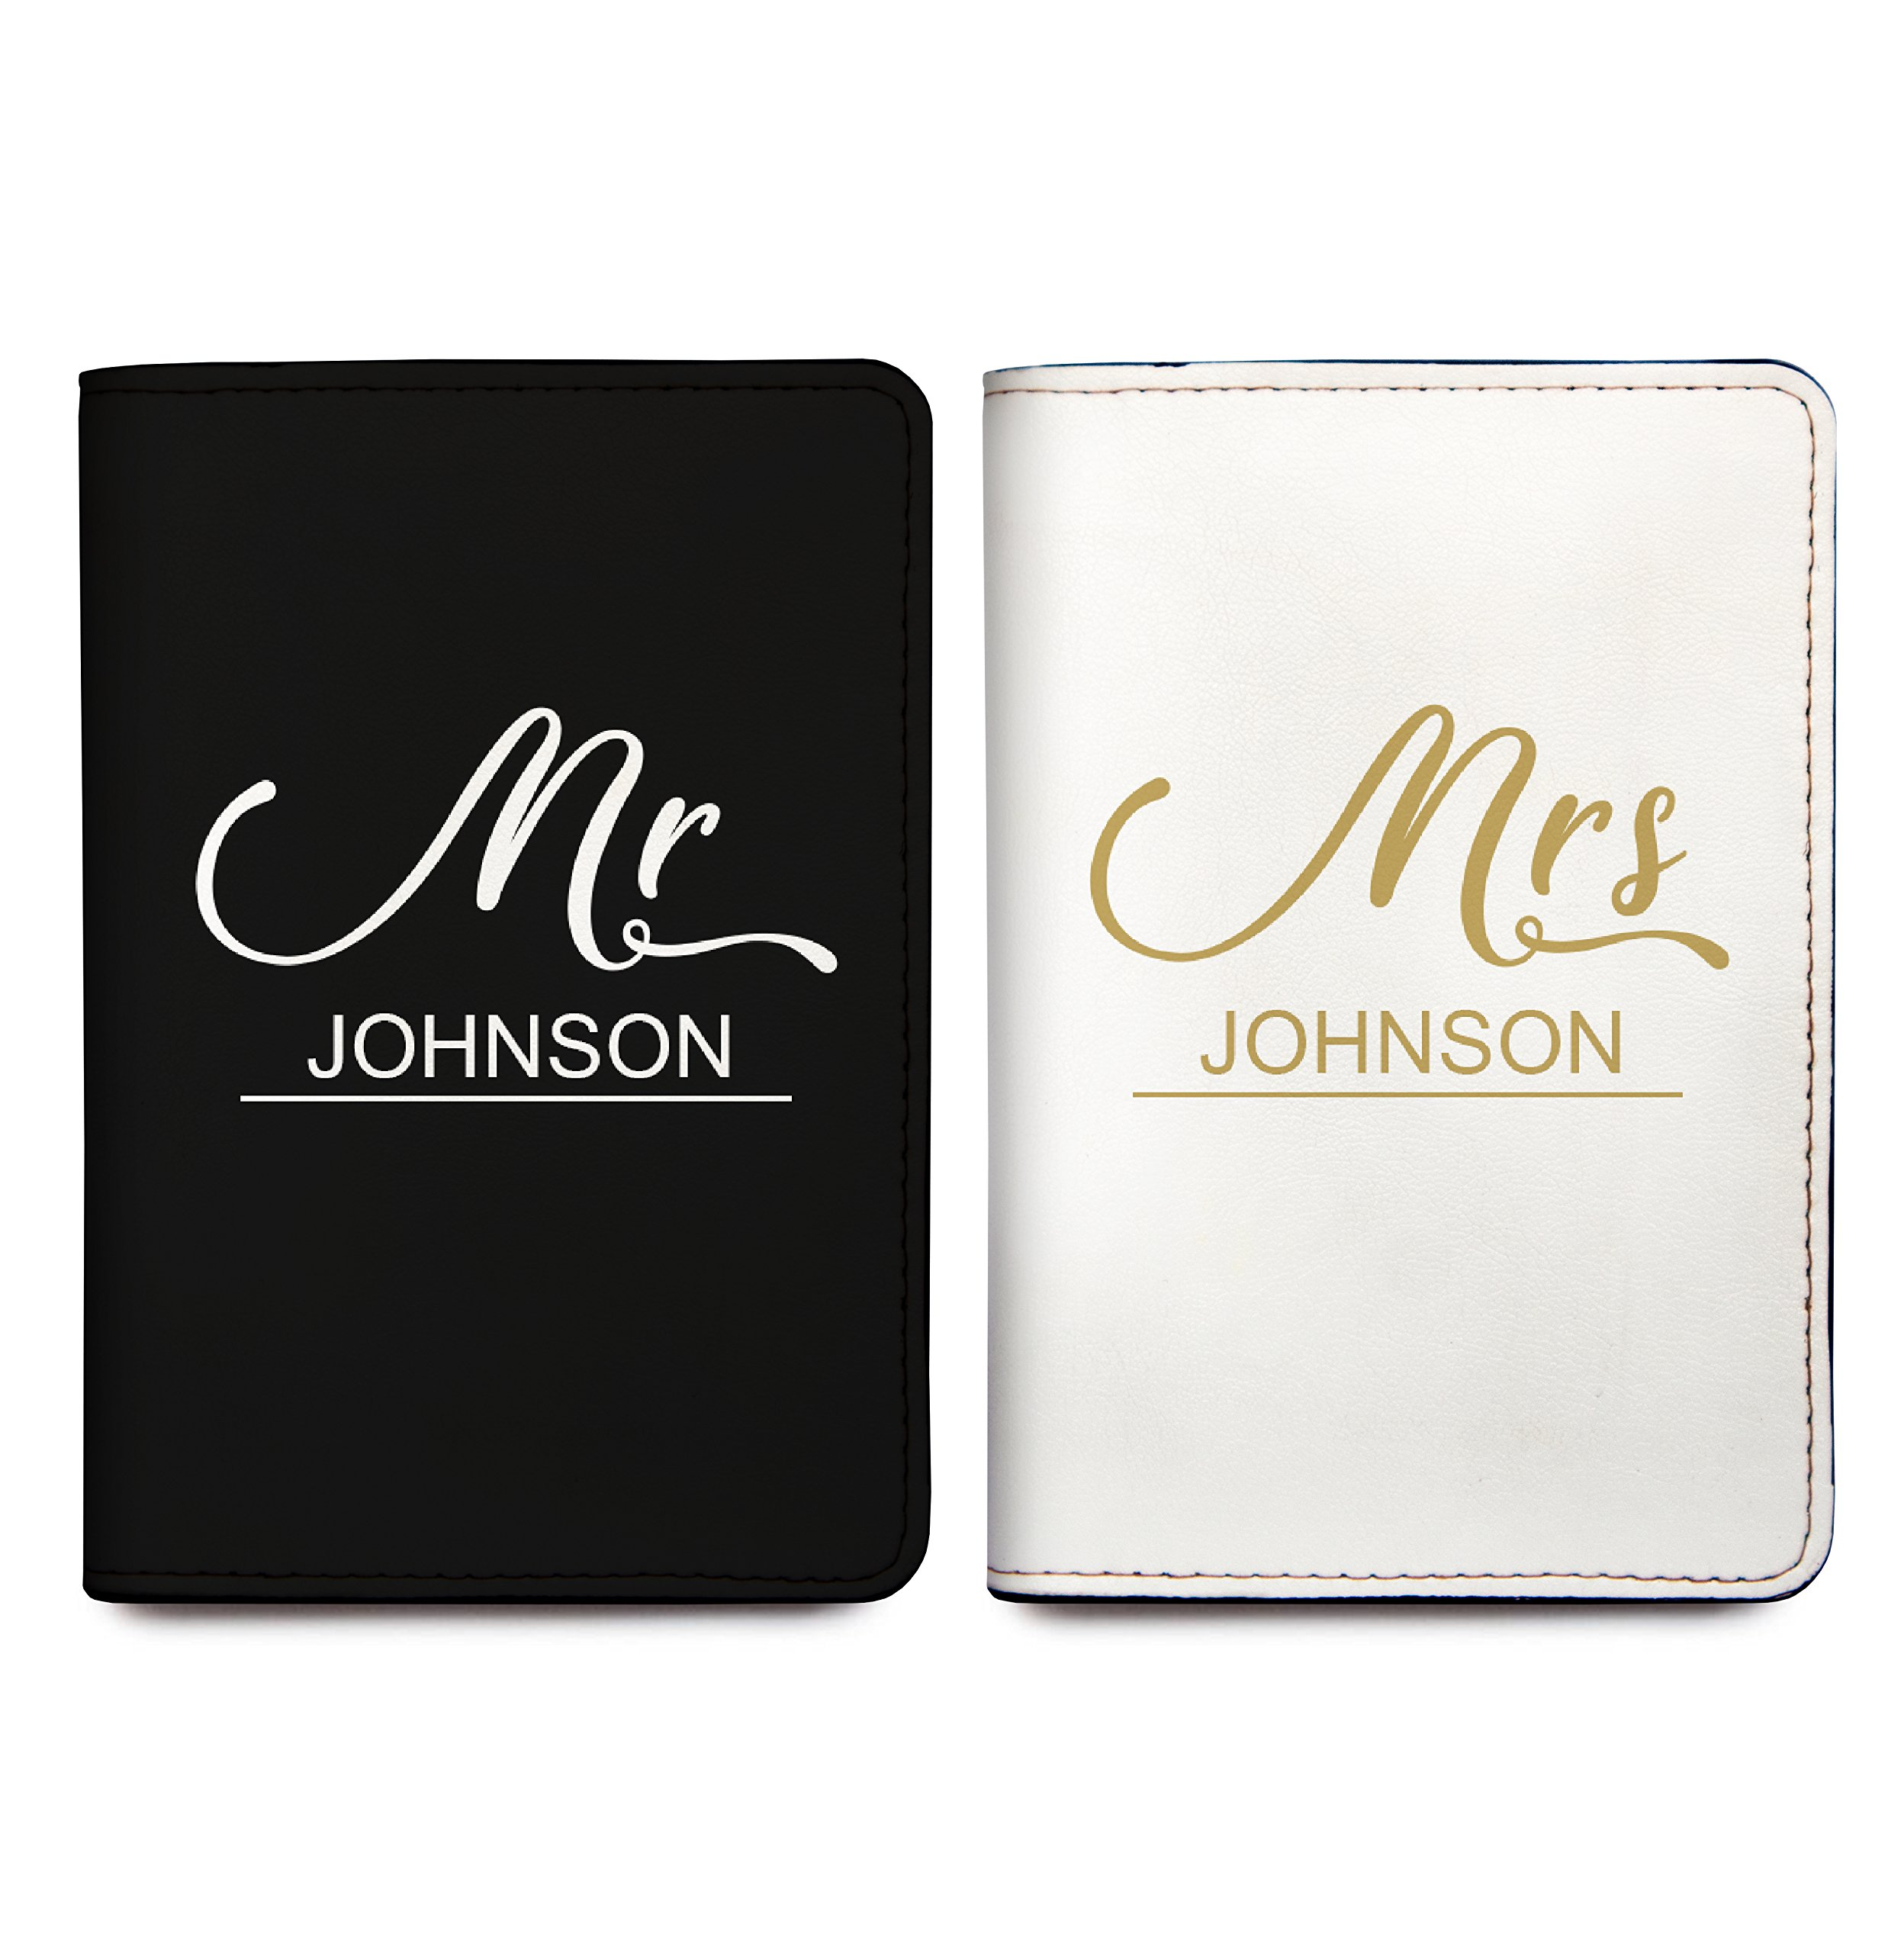 Mr And Mrs - Couple Passport Holder Personalized Passport Cover Set of 2